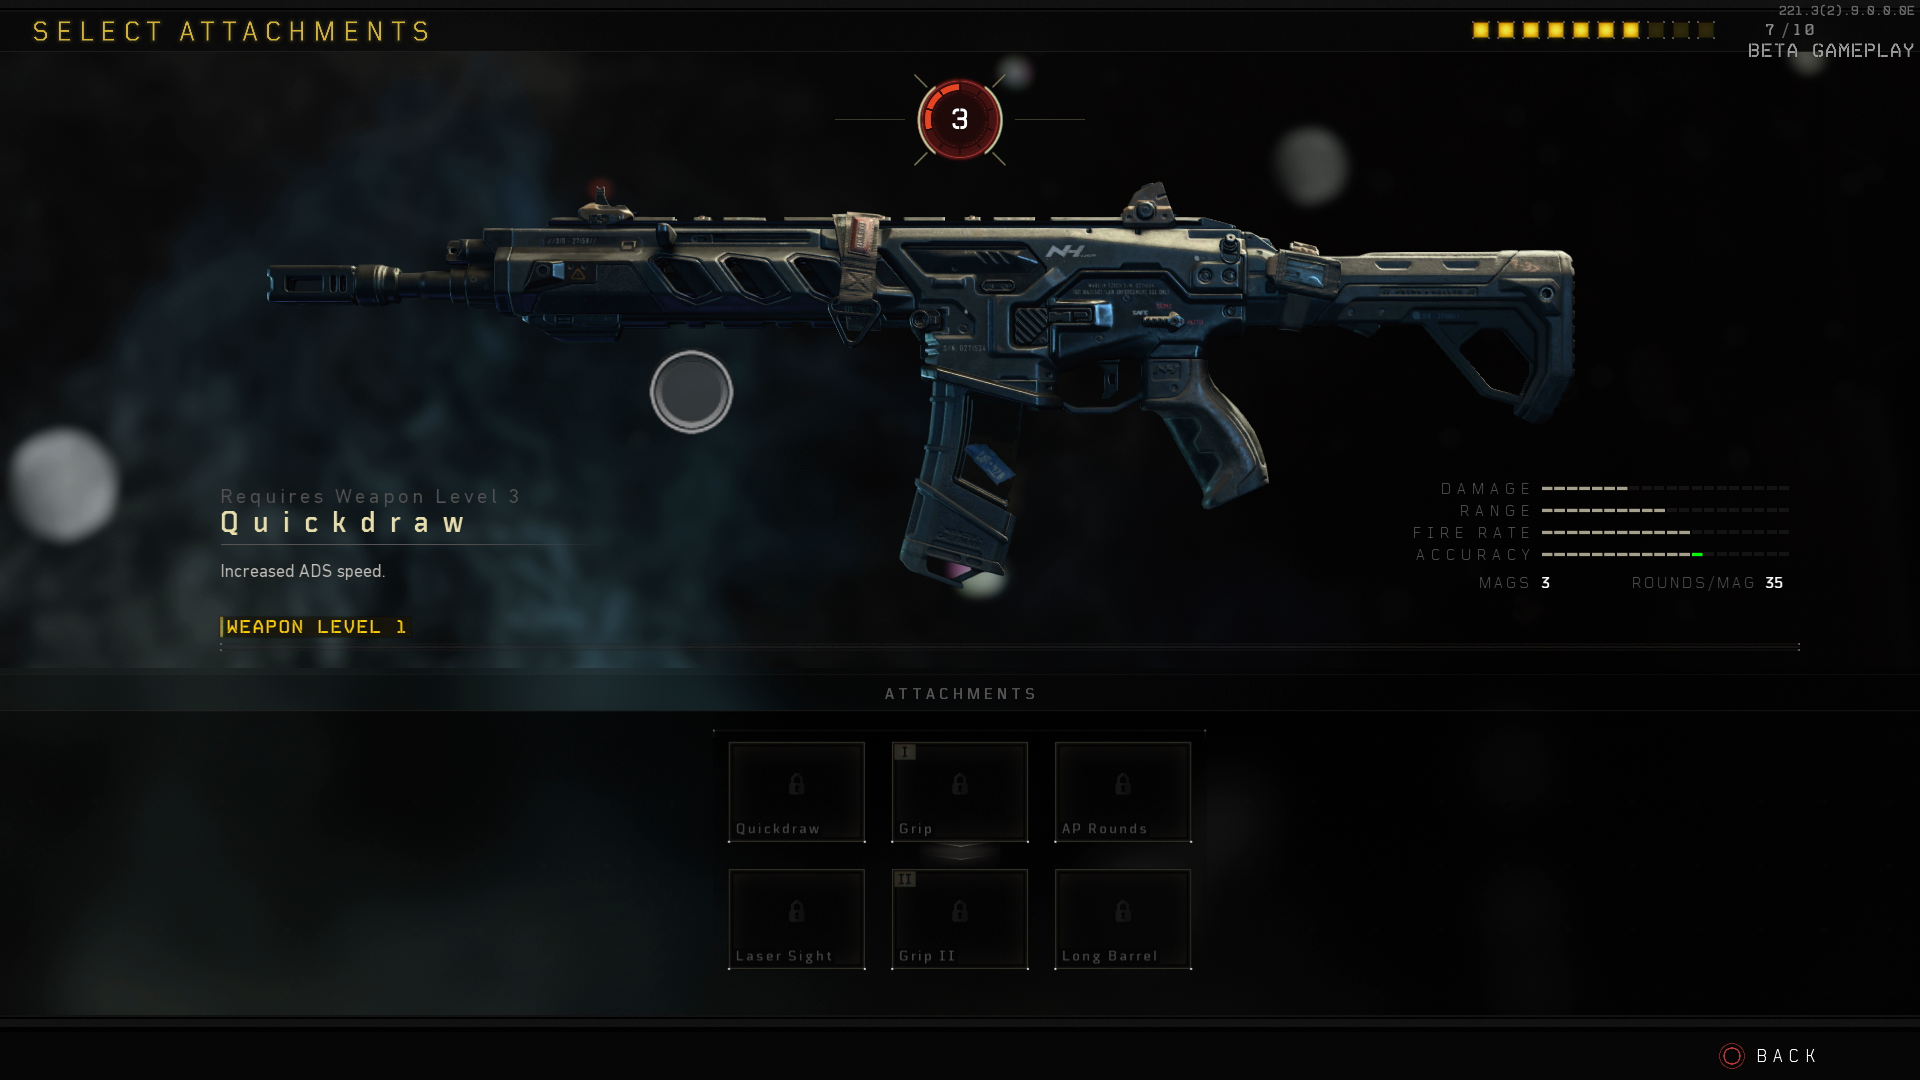 Call of Duty Black Ops 4 Best Attachments - Attachments List